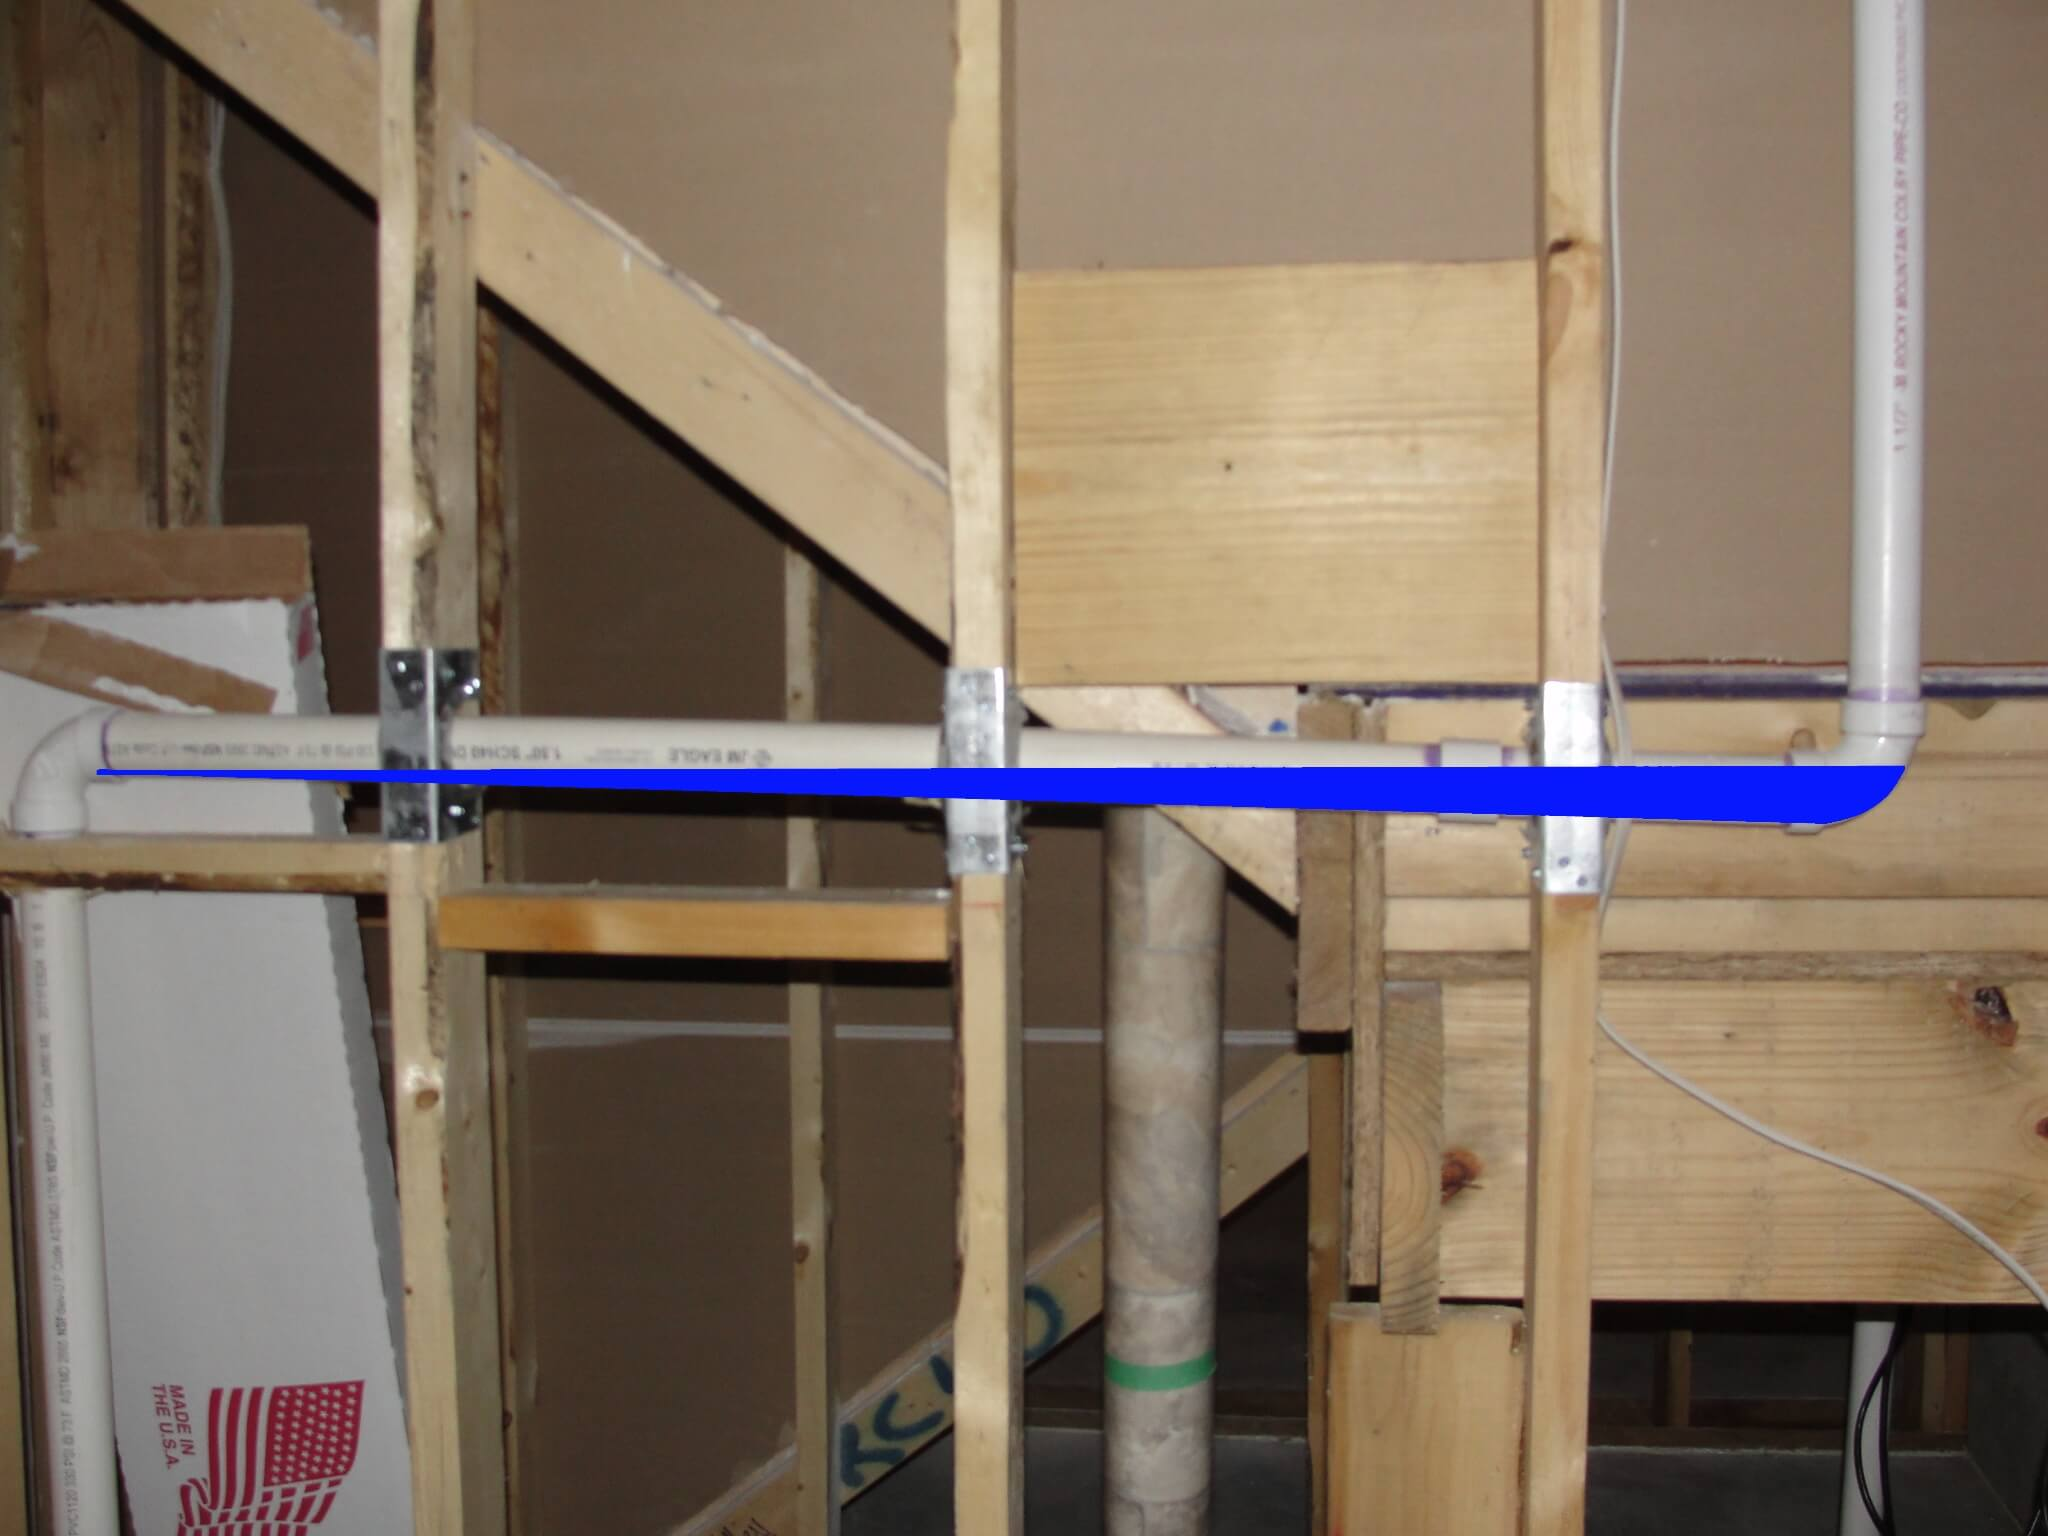 Vent System Photos From New Construction Home Inspections Part Ii